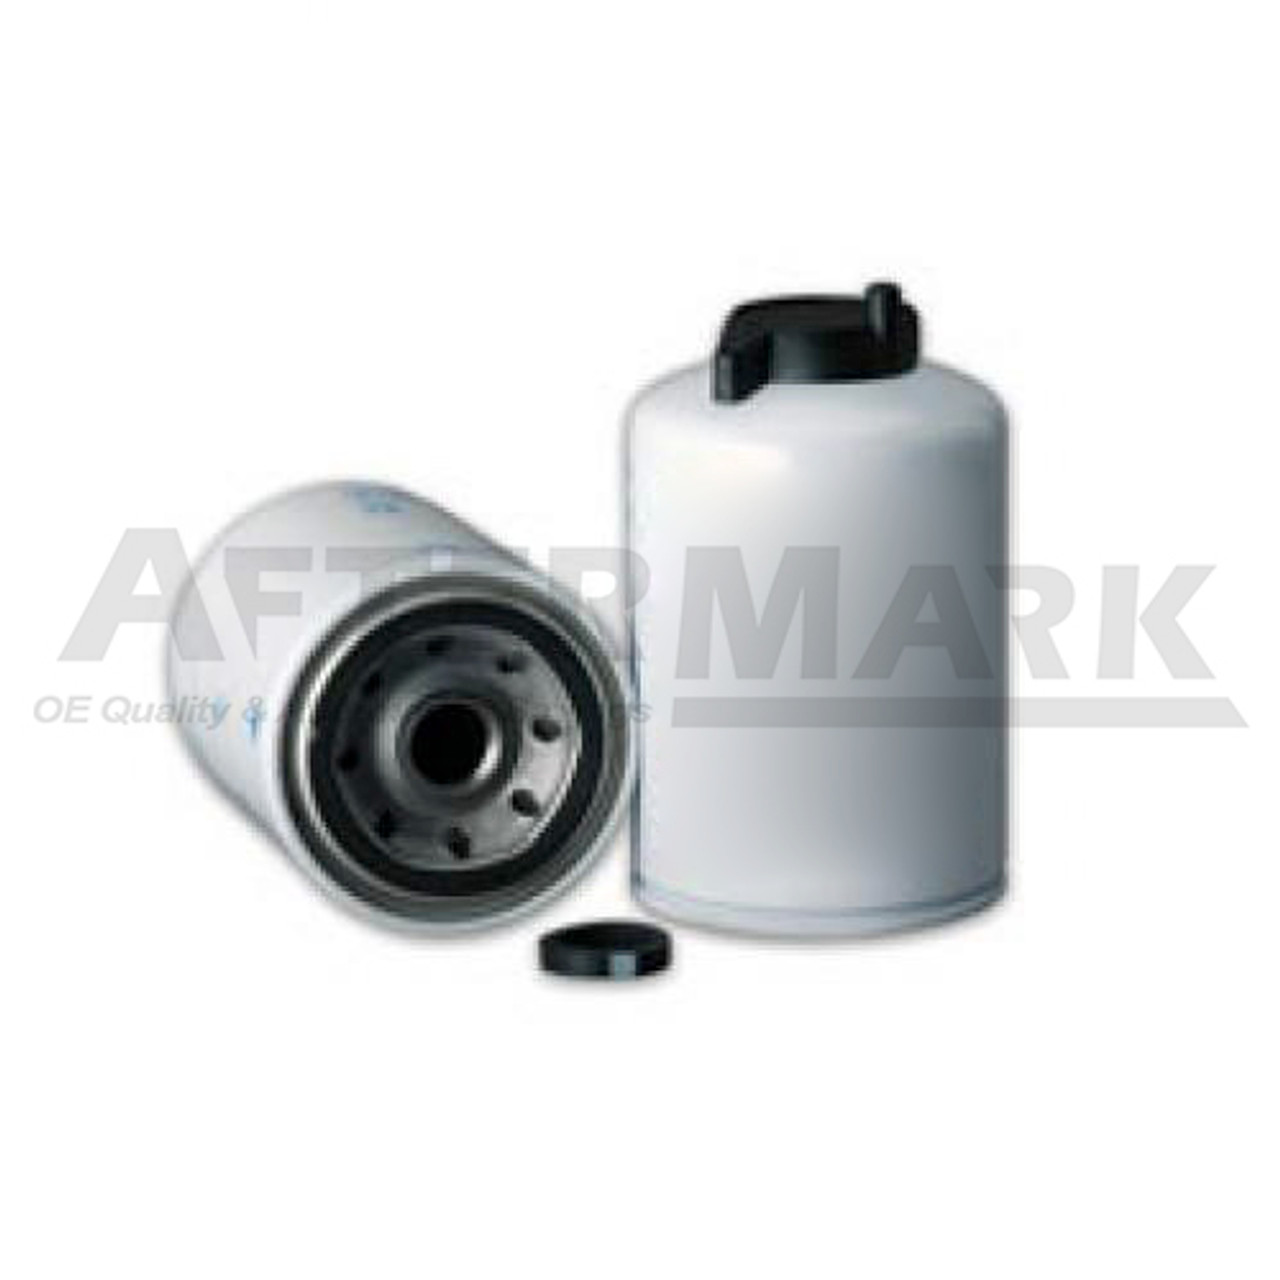 A-11-9342AM Fuel Filter for Thermo King on